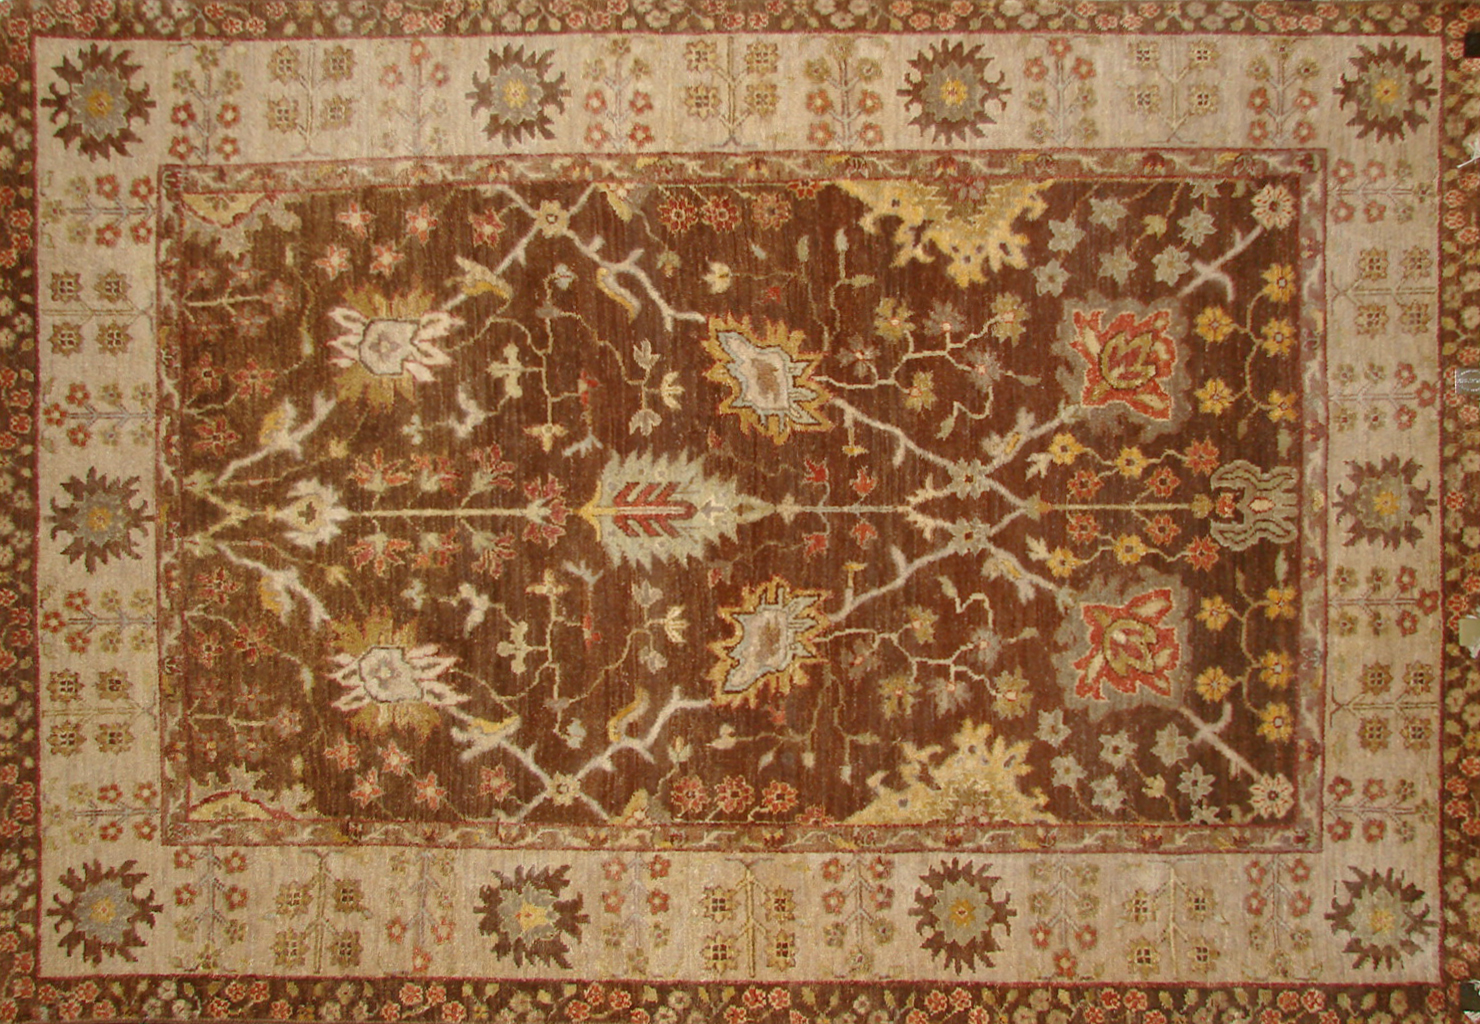 4x6 Traditional Hand Knotted Wool Area Rug - MR19678